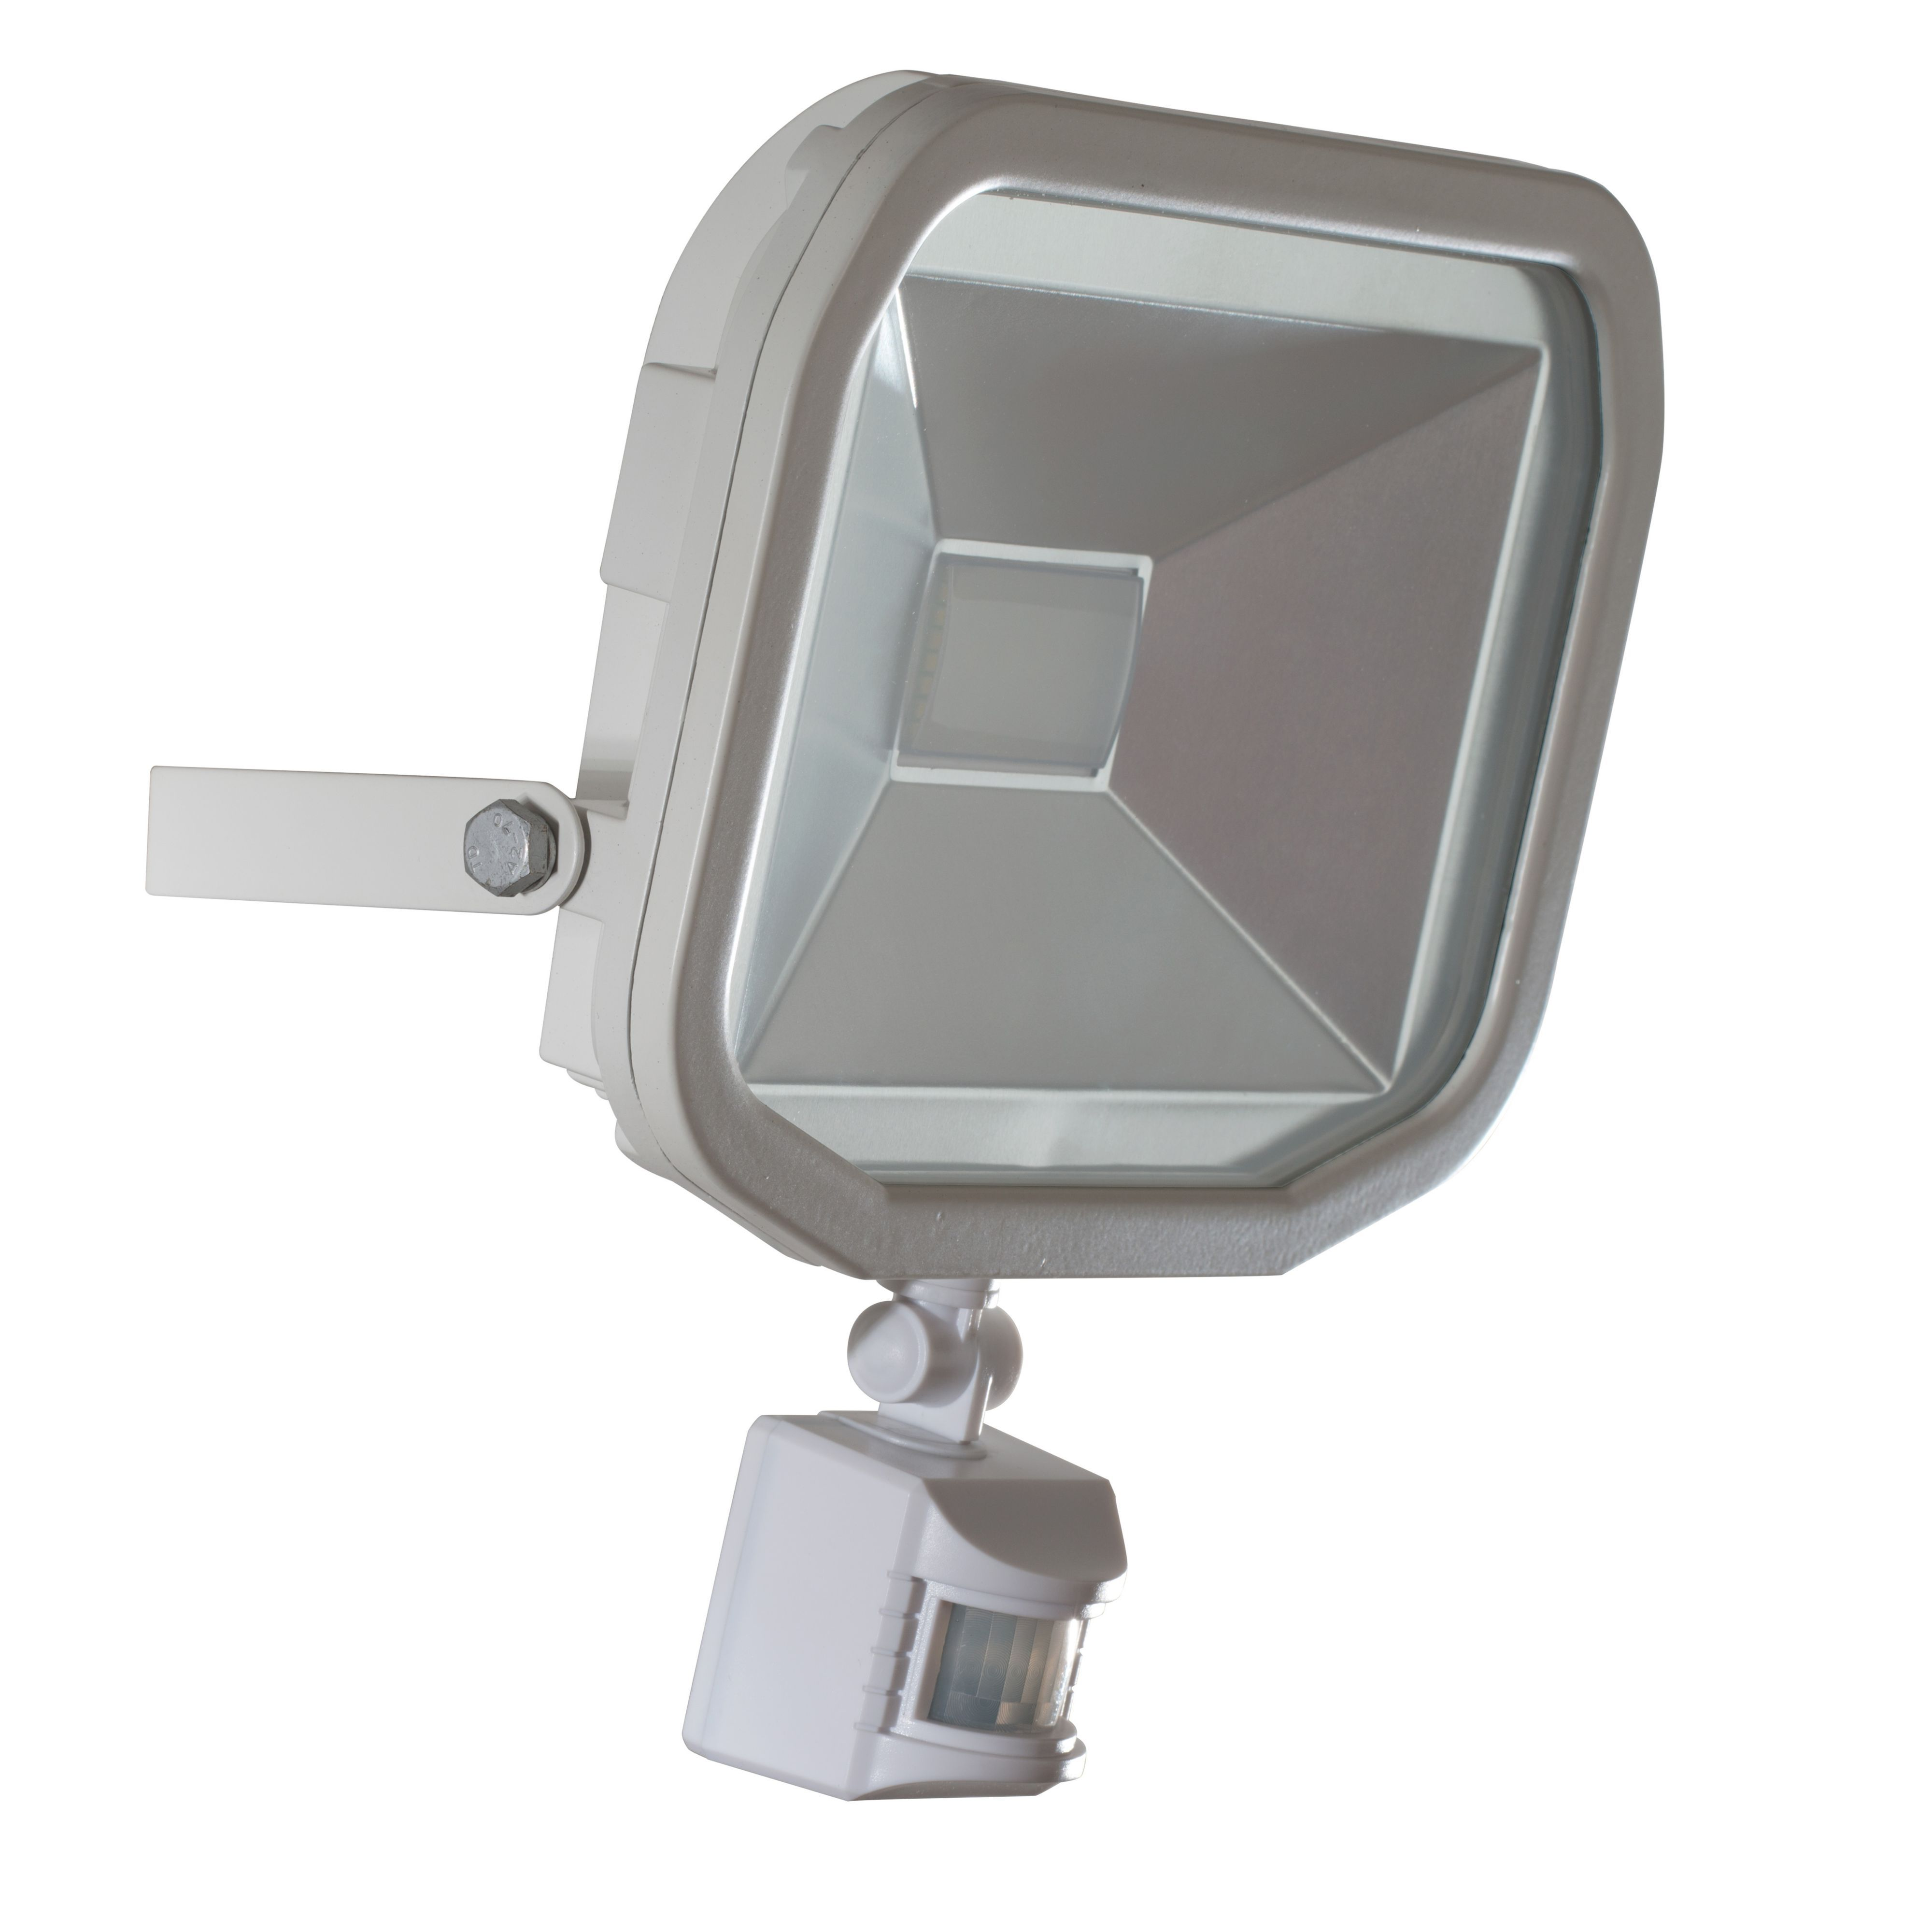 Buy pir sensor luceco shop every store on the internet via pricepi 5015056542515 bvseo57ms 3wire 100150w bvseo0ms luceco white mains powered external pir security light aloadofball Gallery